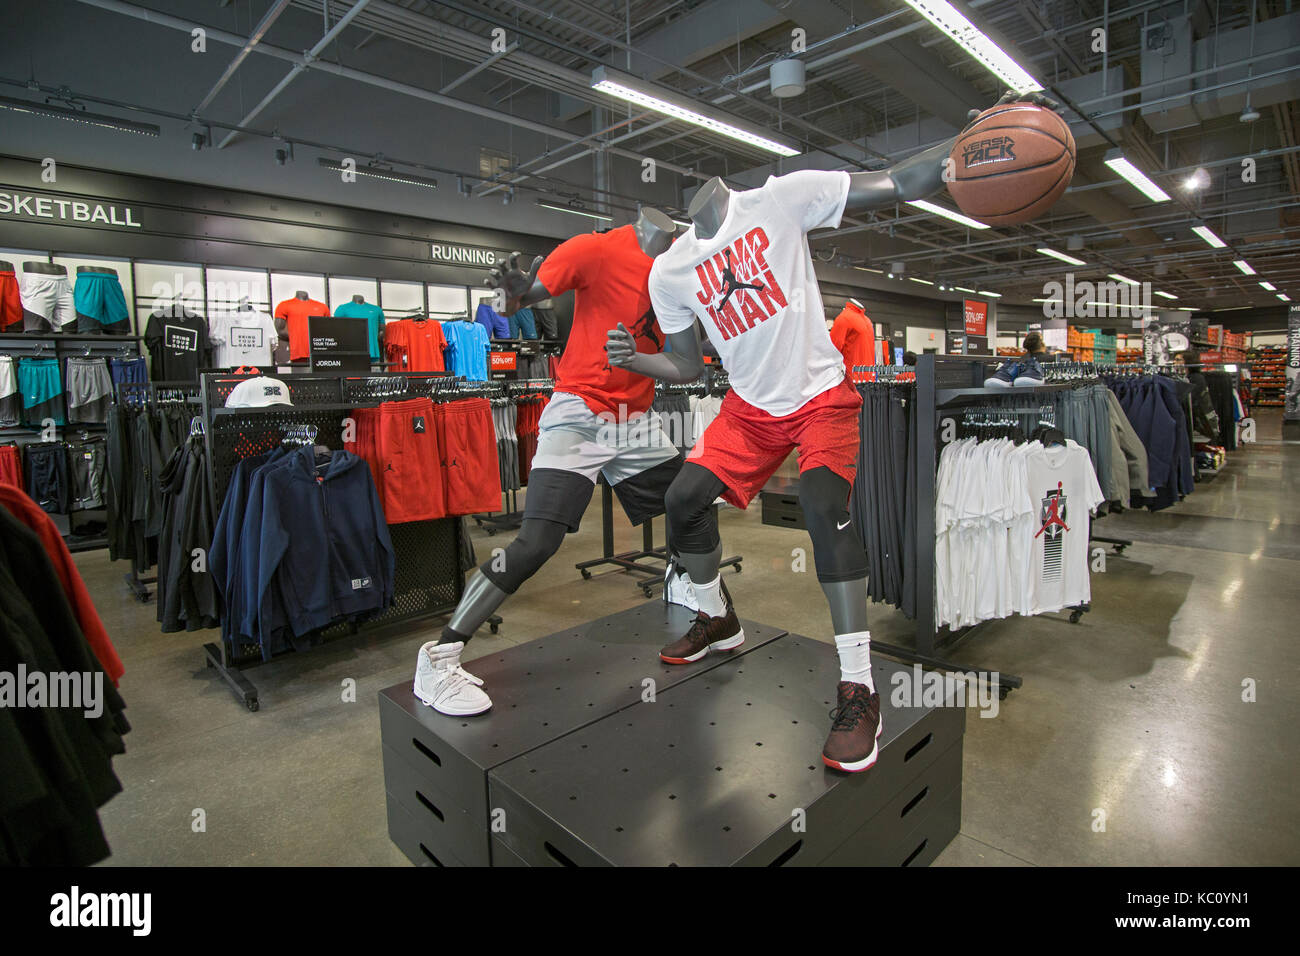 01bdb5c21213 The interior of the Nike Factory Store at the Tanger Outlet Mall in Deer  Park Long